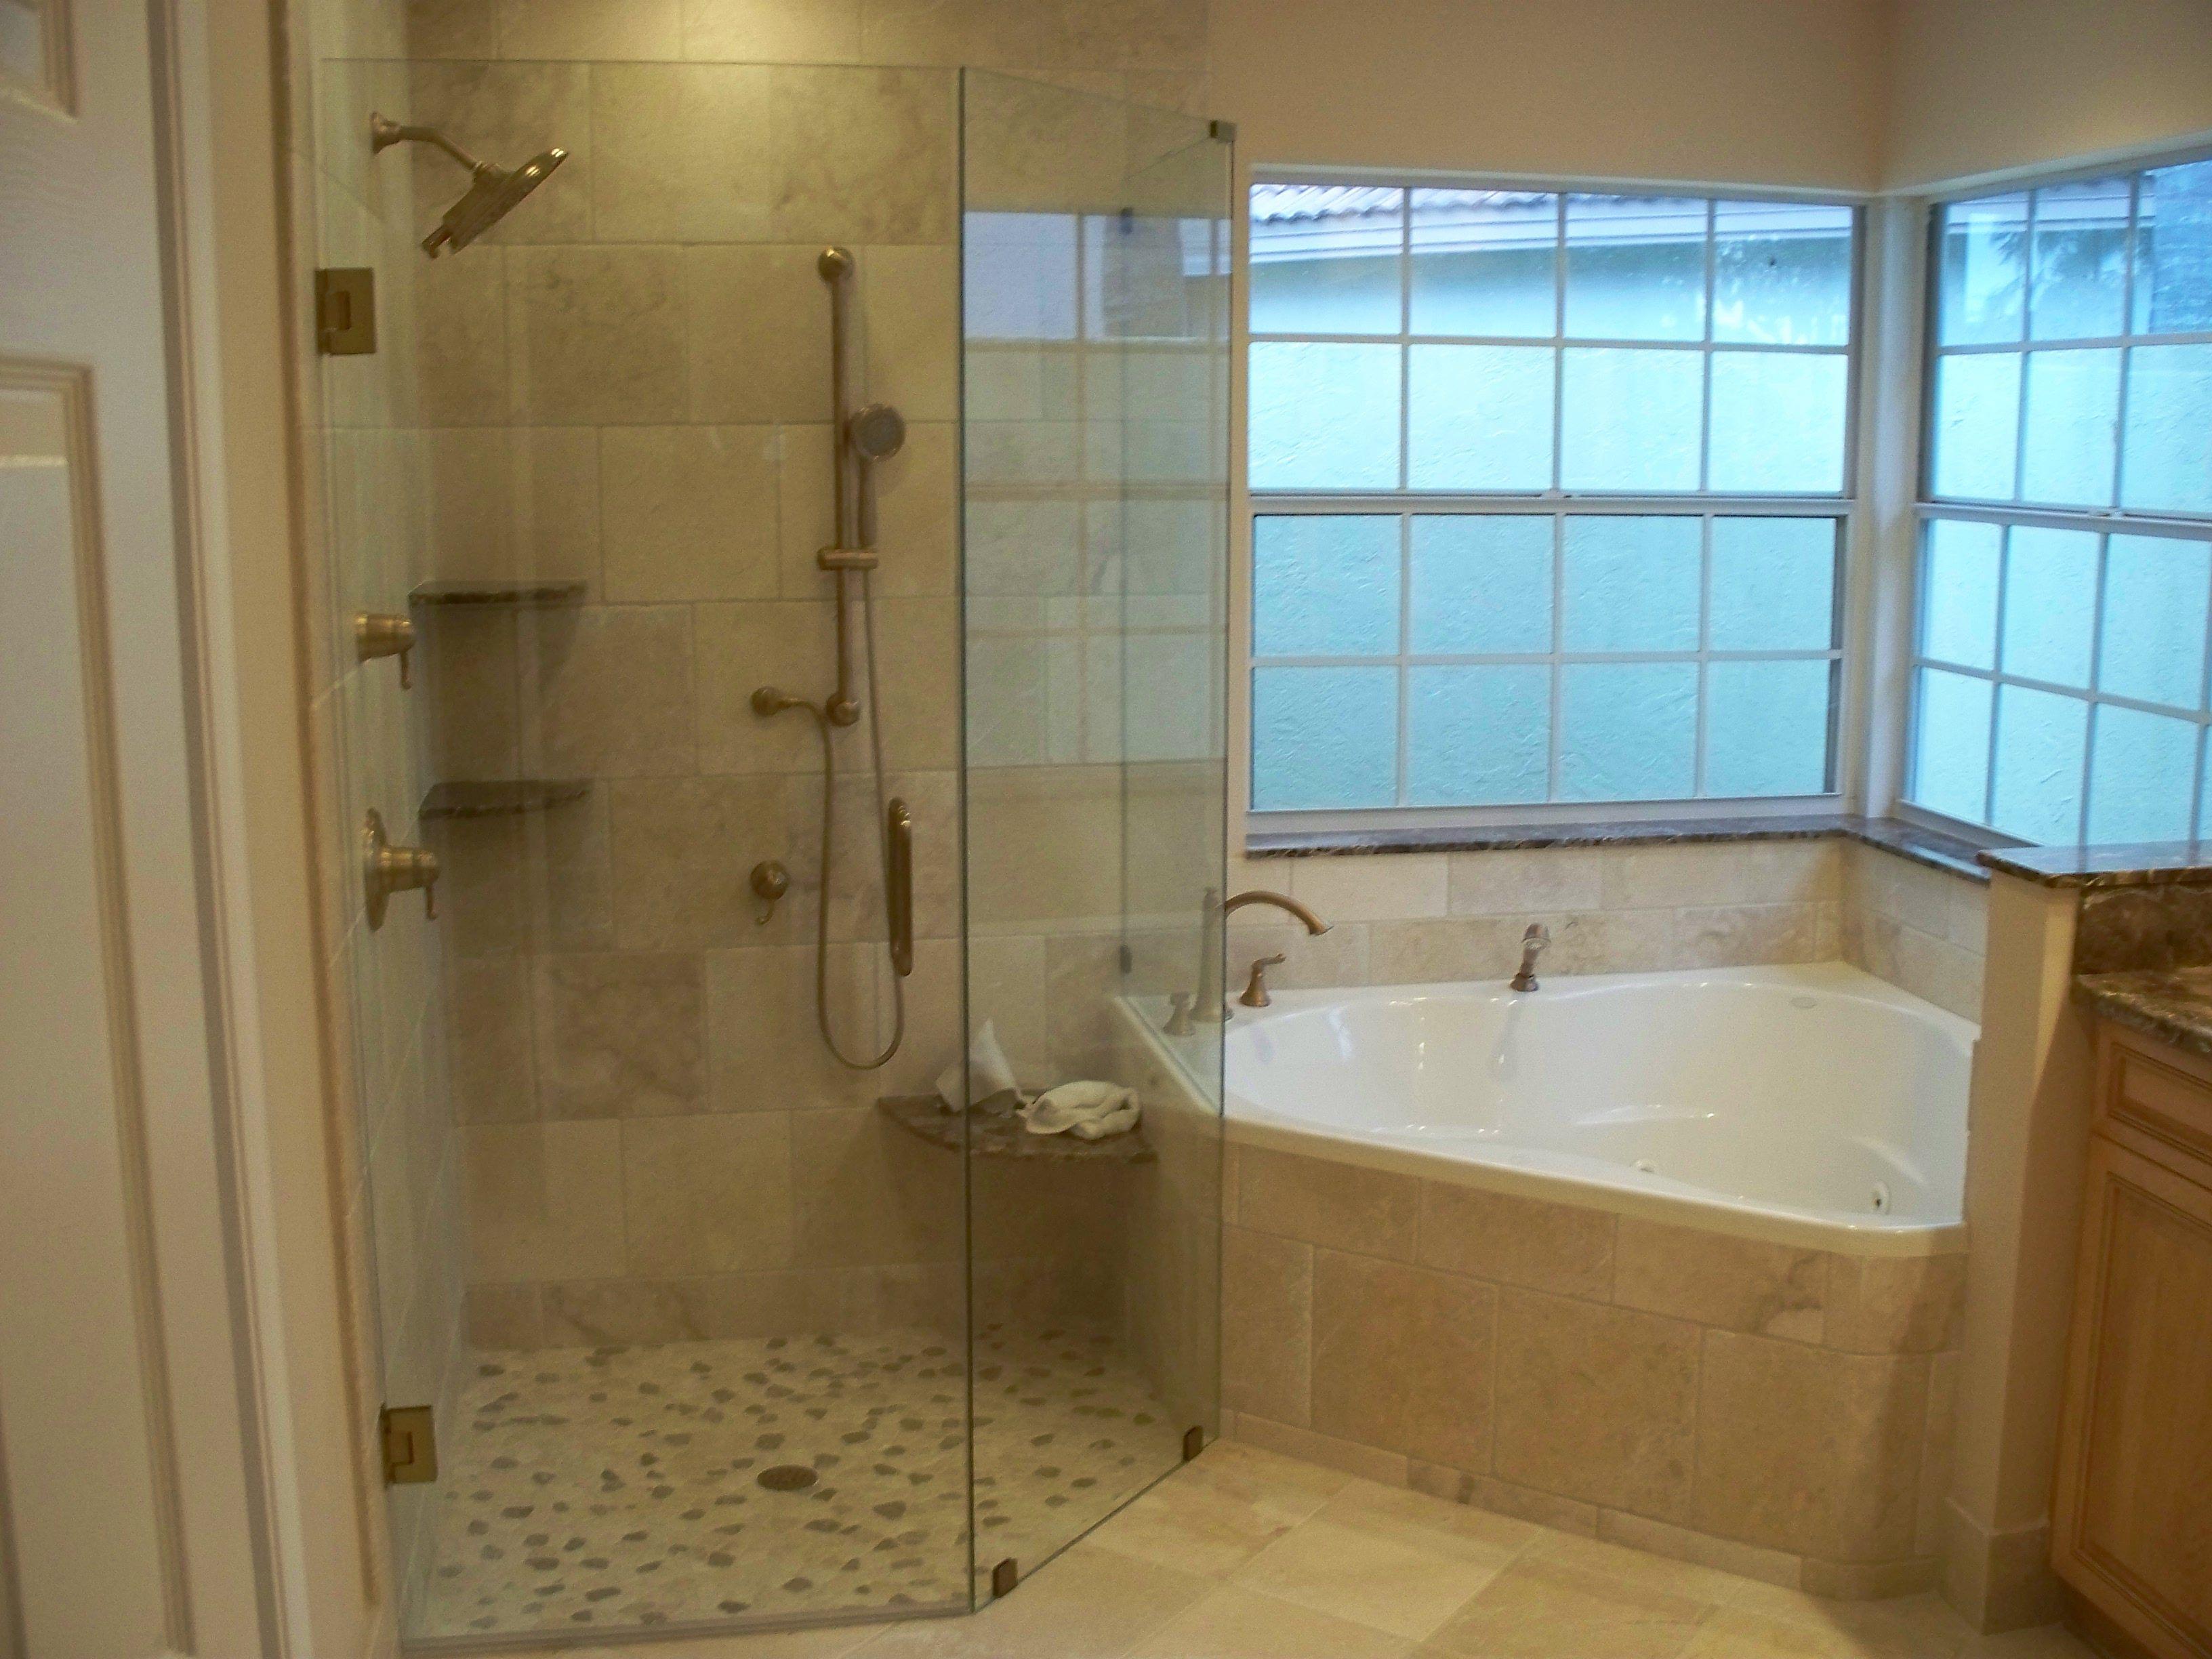 Bathroom Renovation Cost Whirlpool corner tub w/ larger walk in shower. do not like the wall next to